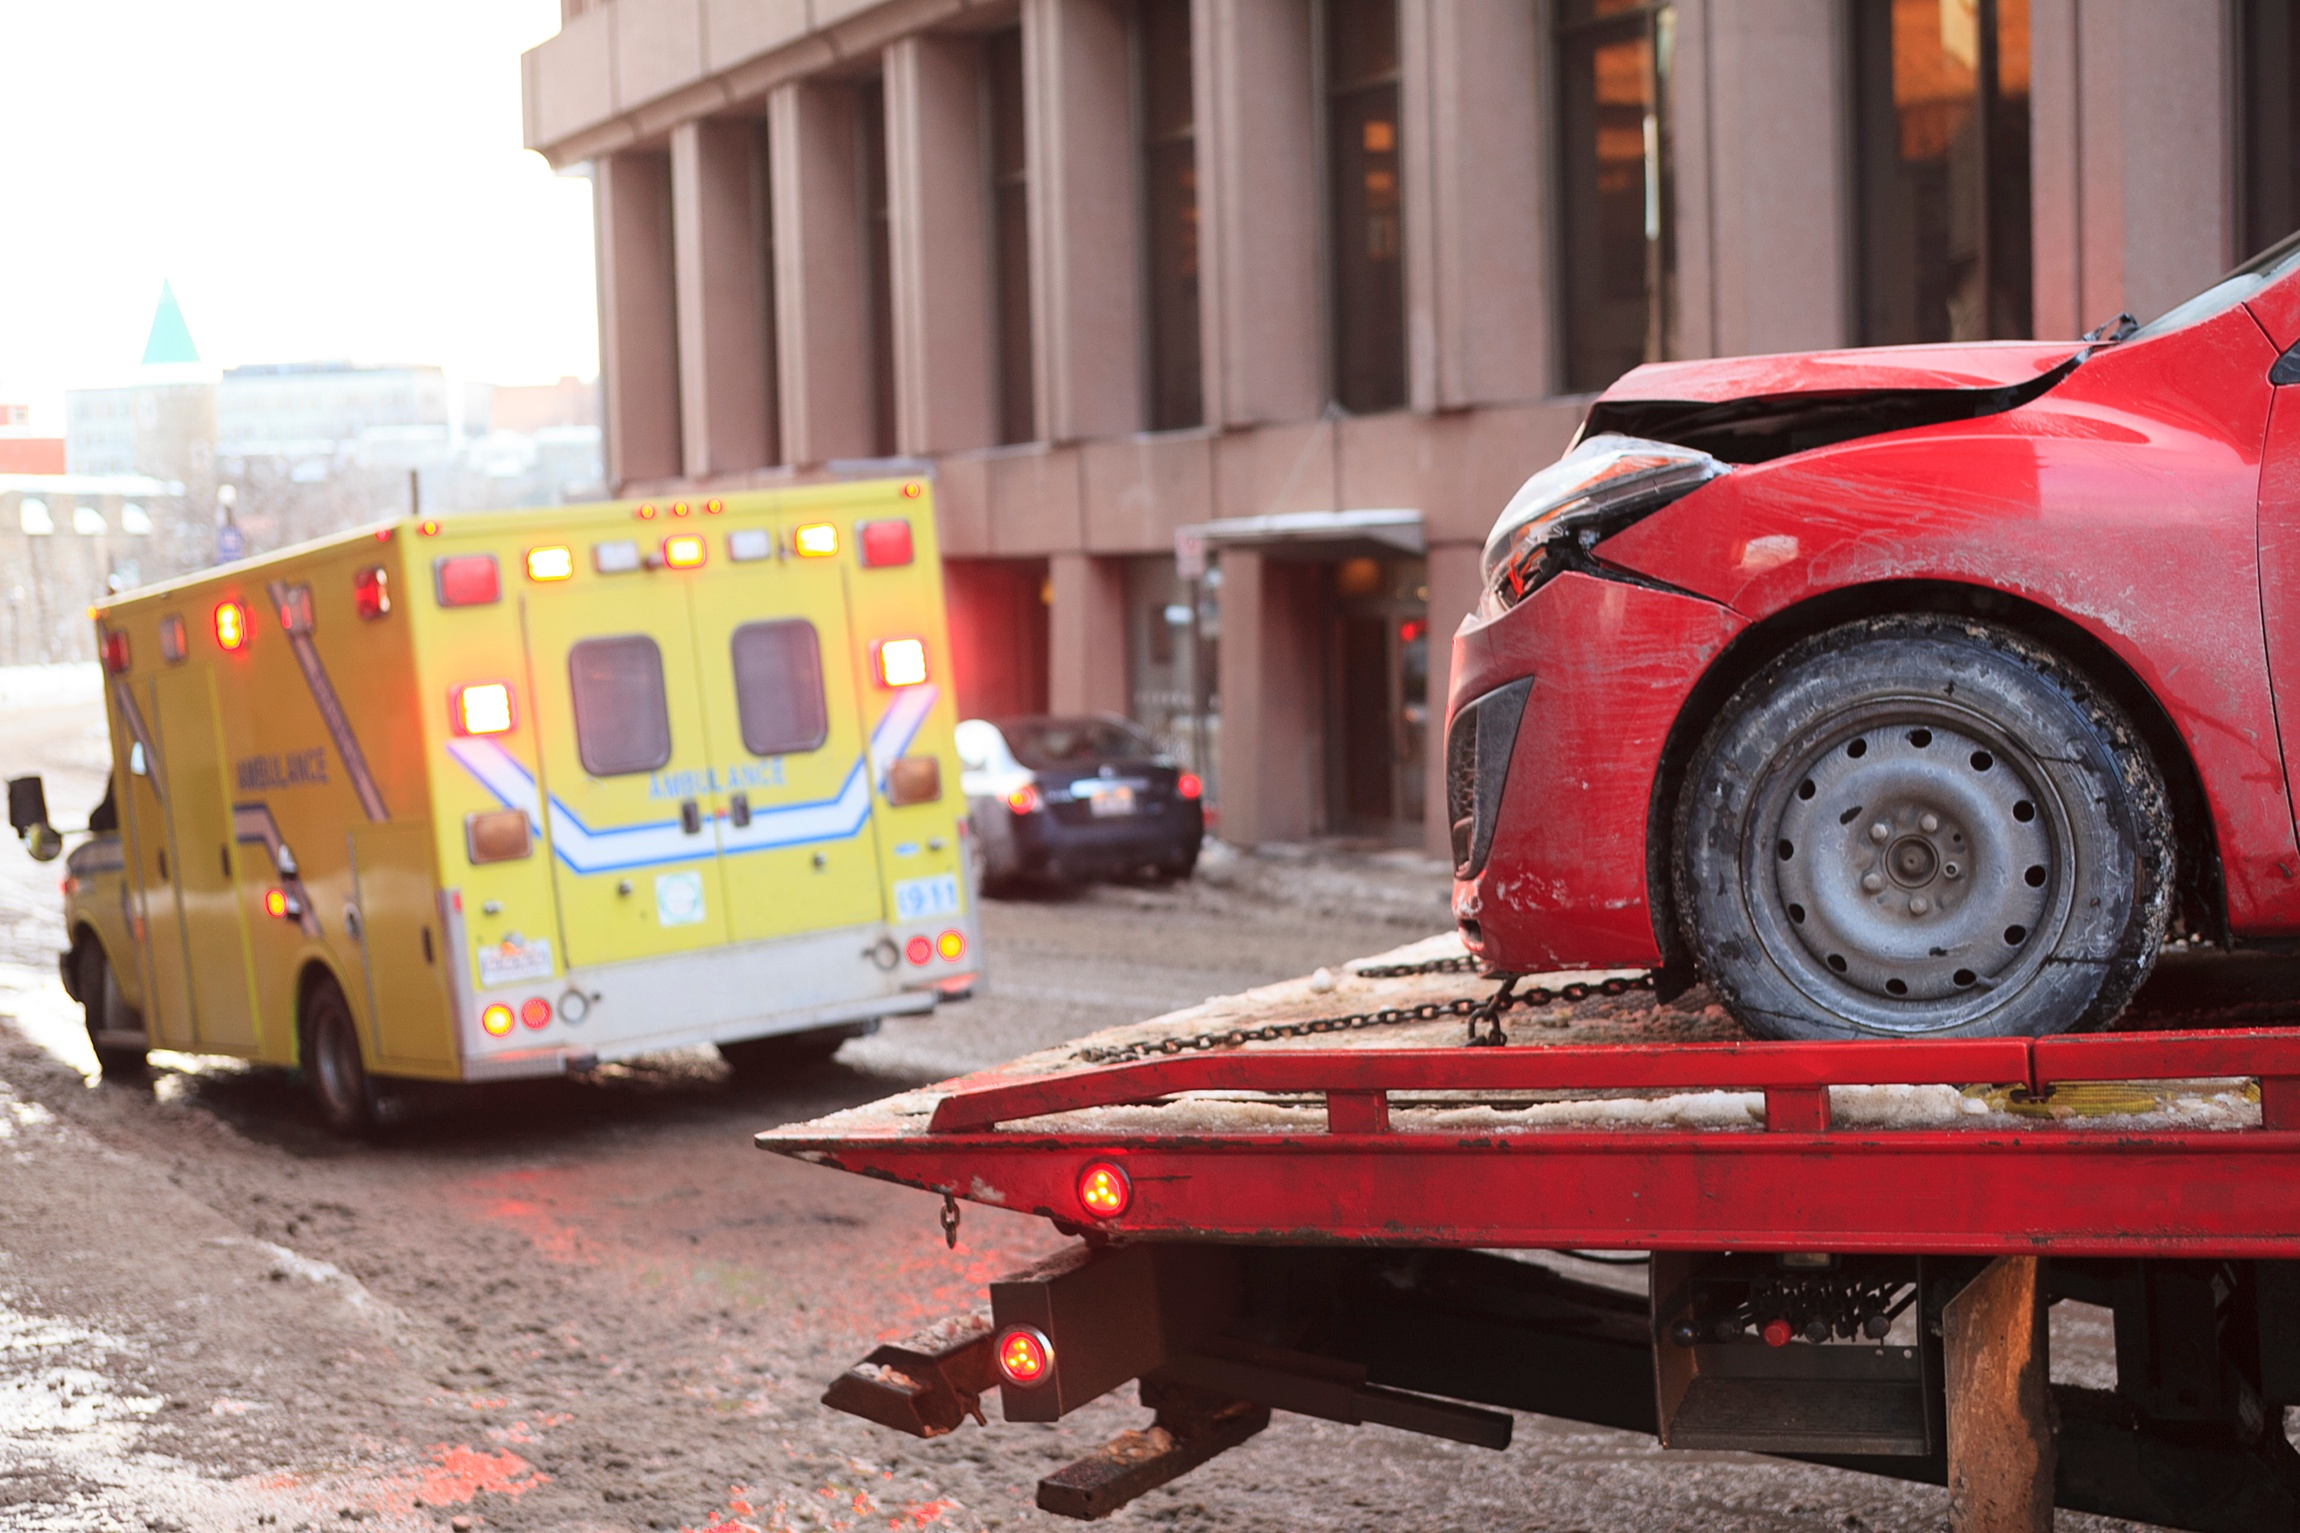 Accident Injury Lawyer In Duluth, GA